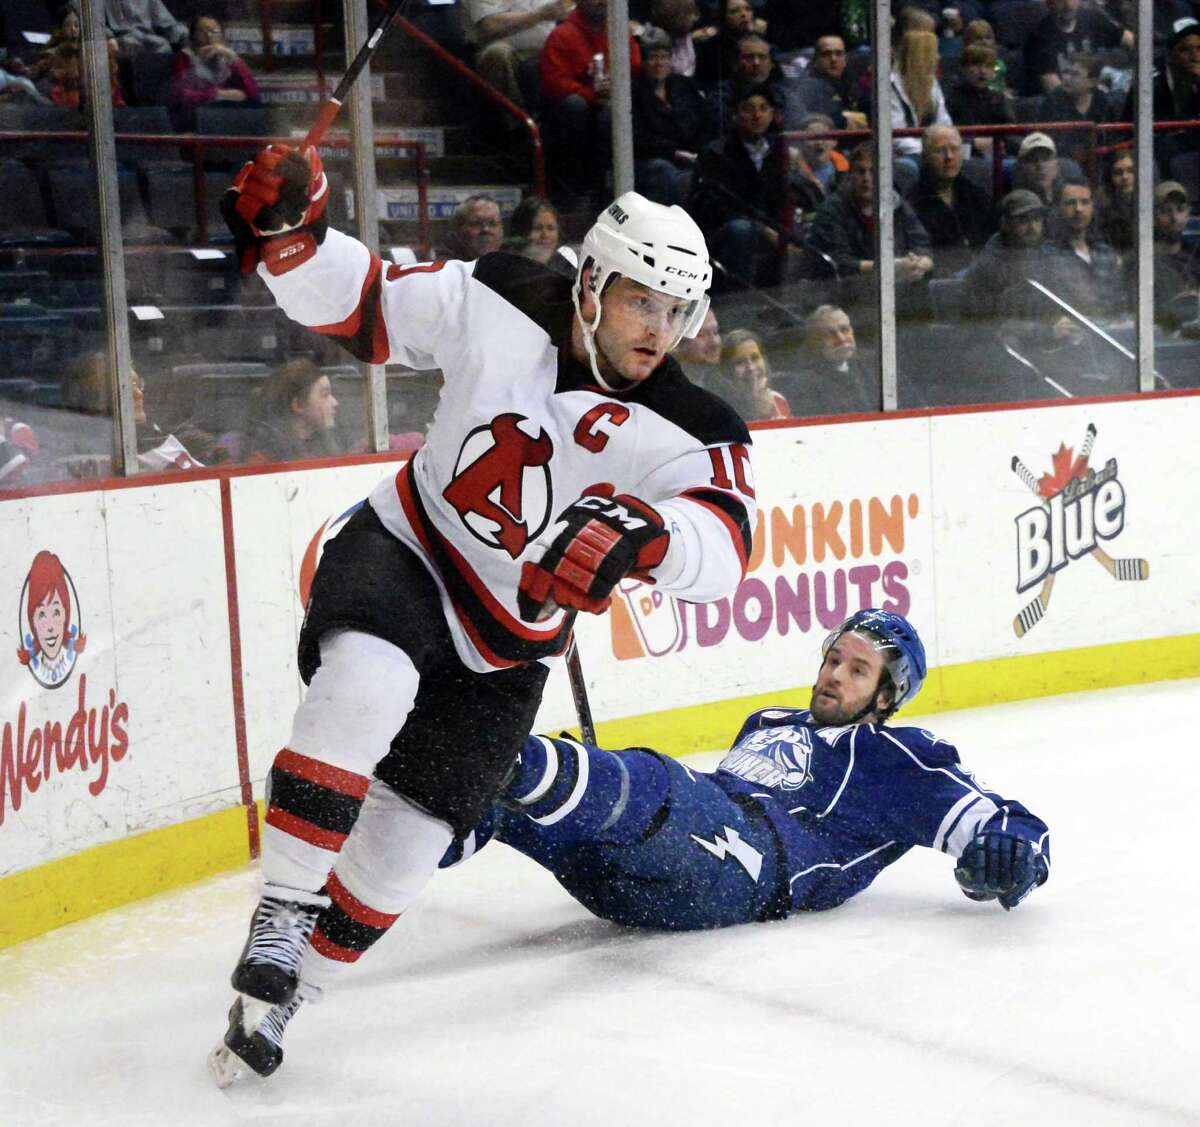 Albany Devils's # 10 Rod Pelley, left, skates away after hard check to Syracuse Crunch's #24 Jean-Philippe Cote during Saturday's game at the Times Union Center March 14, 2015 in Albany, NY. (John Carl D'Annibale / Times Union)